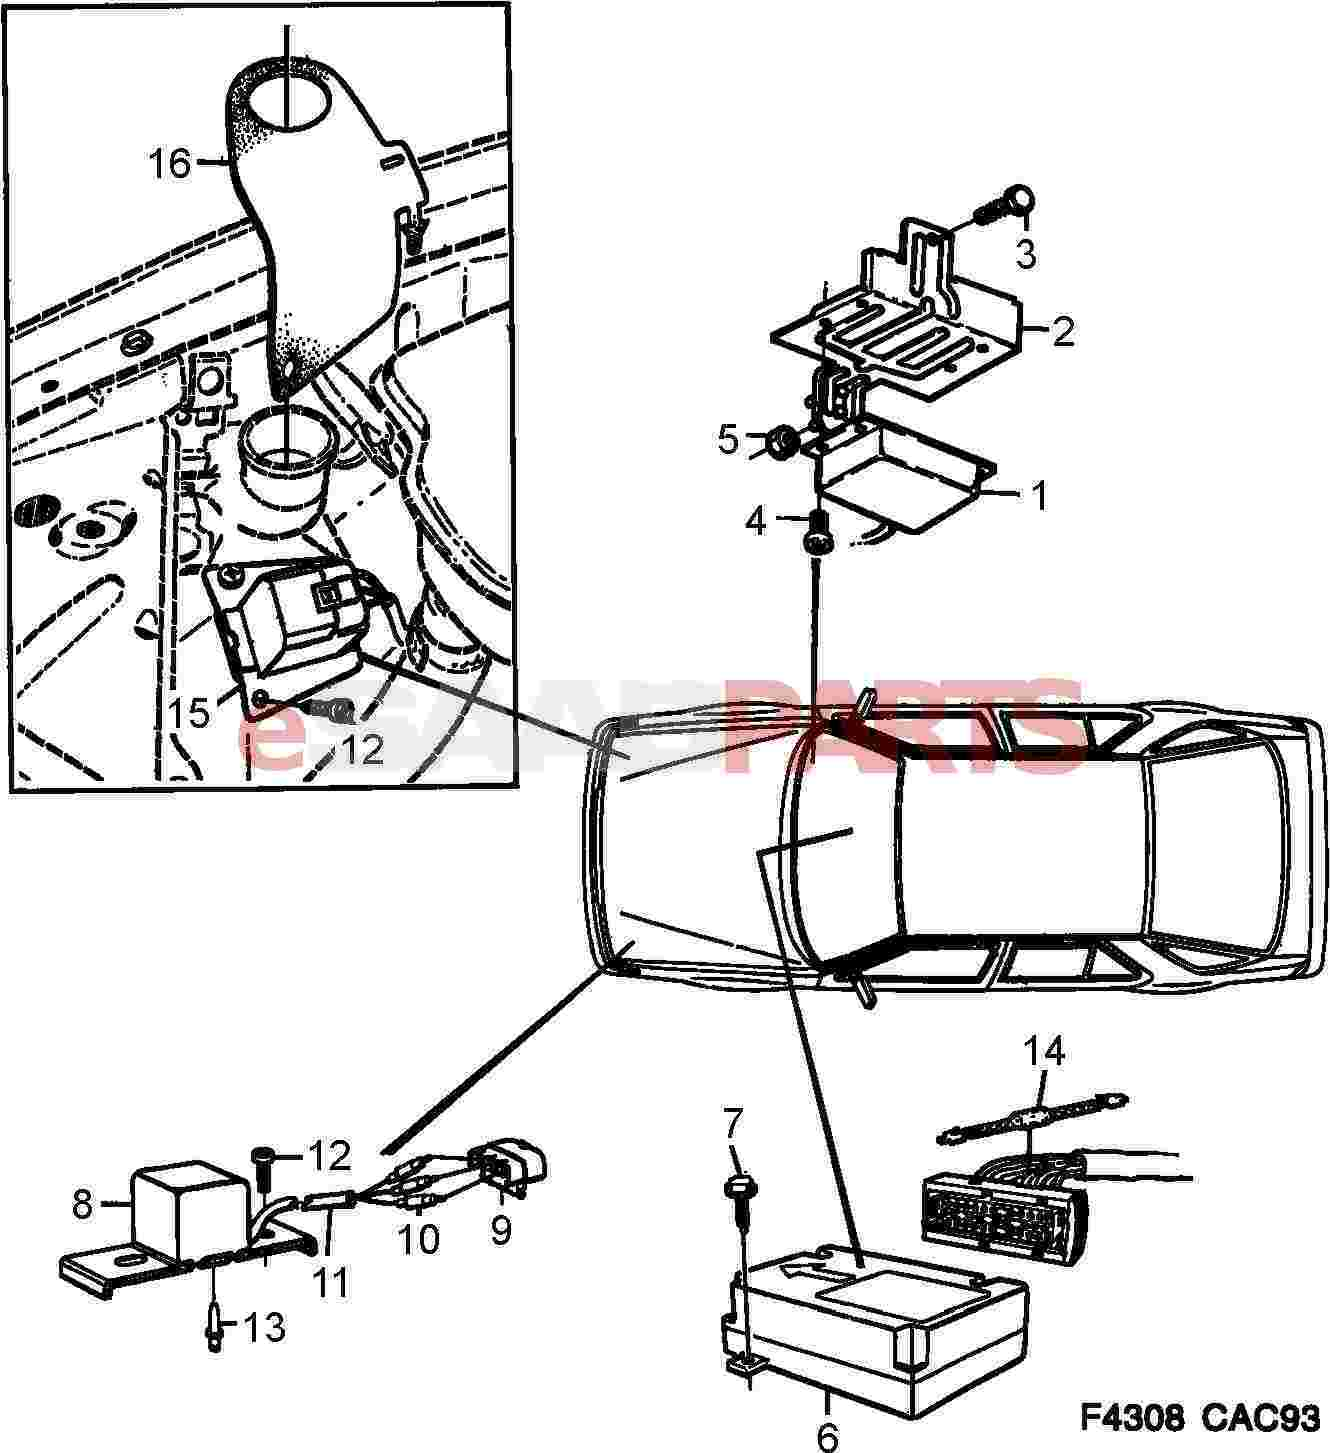 Saab 9 7x Fuse Box Diagram Wiring Diagrams Saab 9-3 Fuse